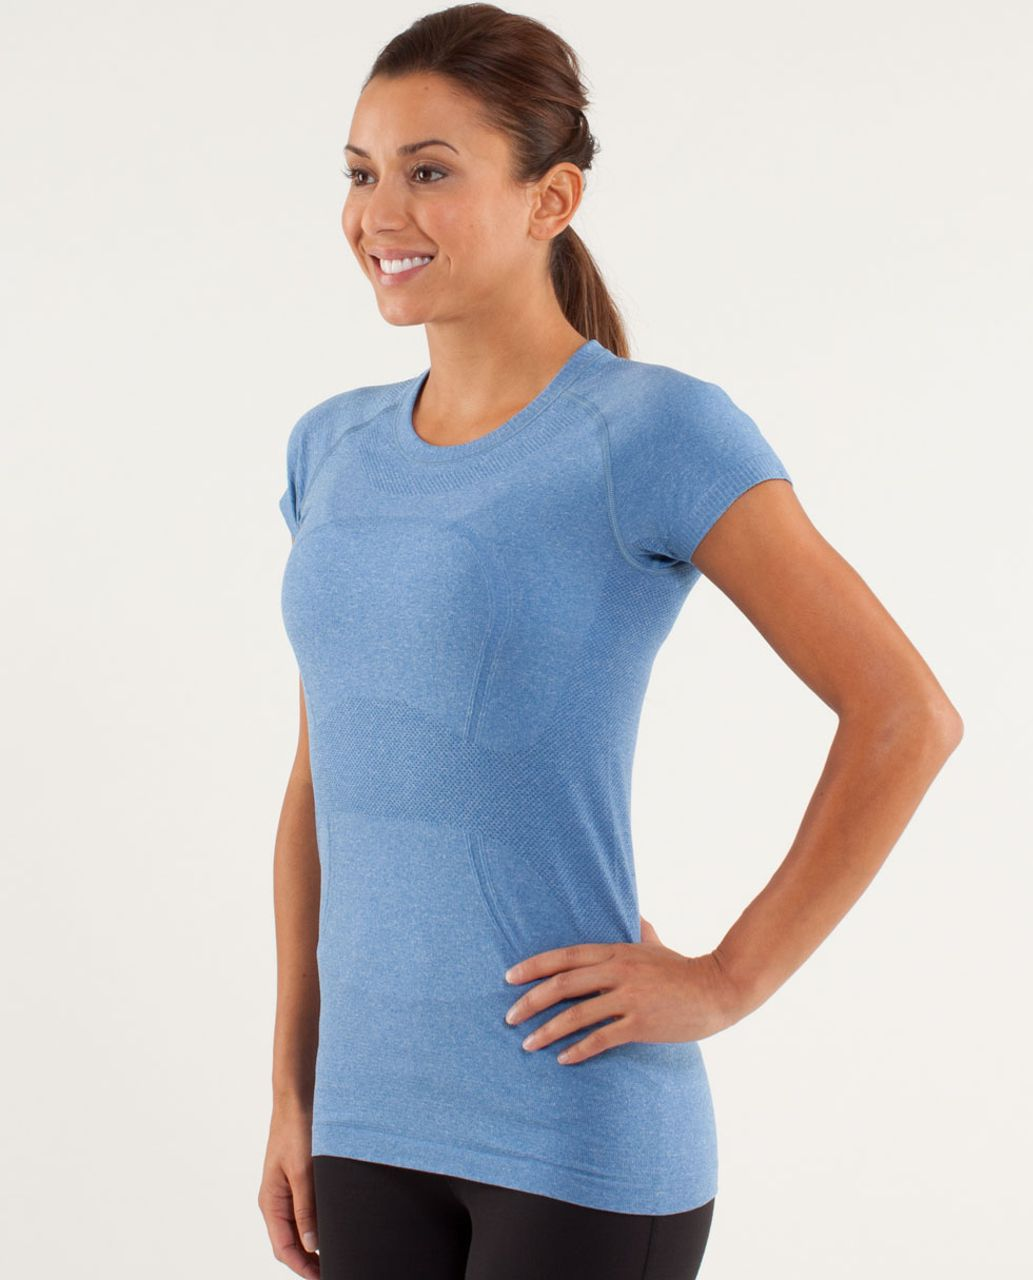 Lululemon Run:  Swiftly Tech Short Sleeve - Limitless Blue